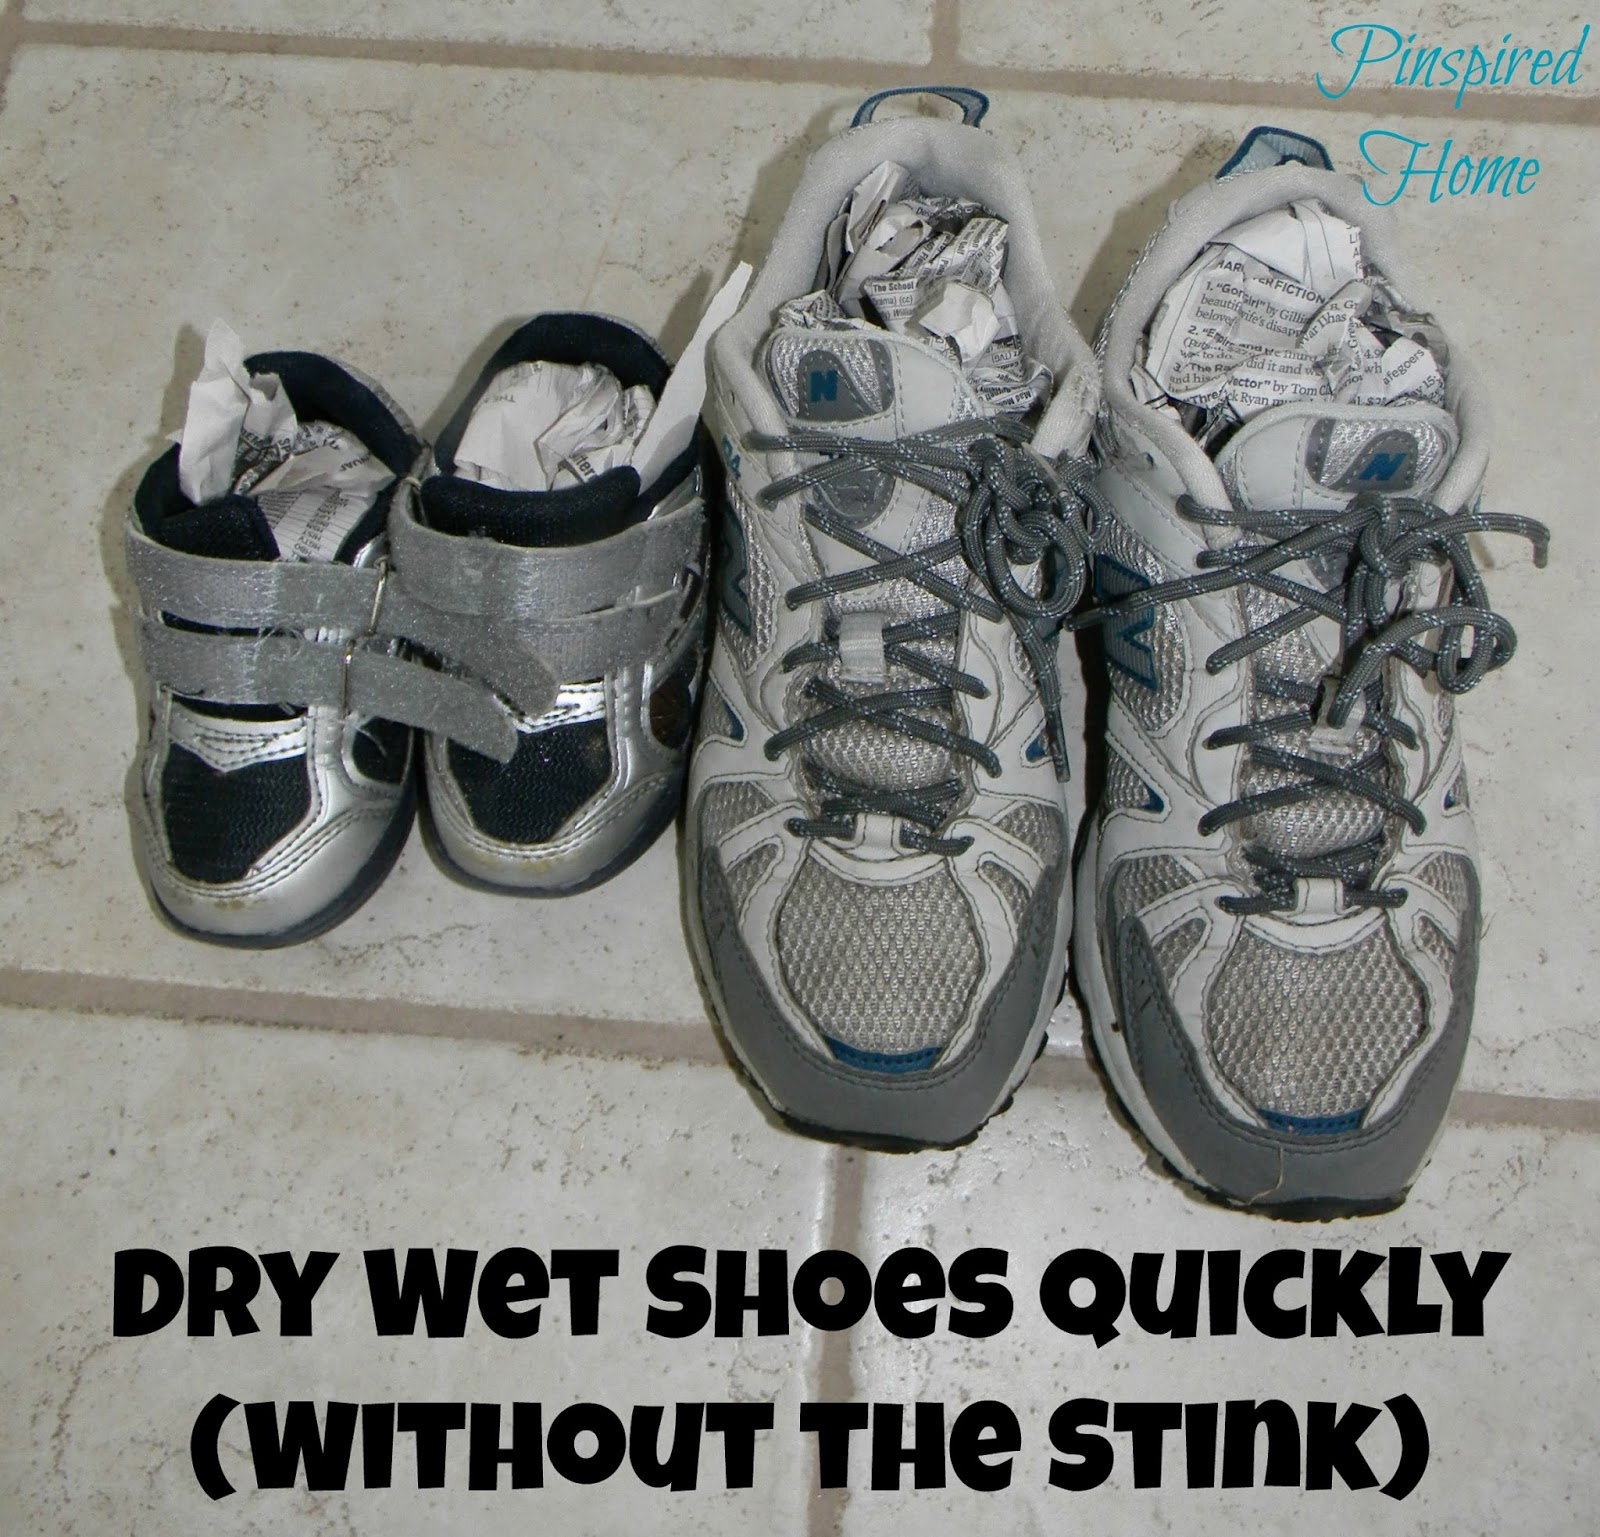 http://pinspiredhome.blogspot.com/2014/05/dry-shoes-quickly-without-getting-too.html